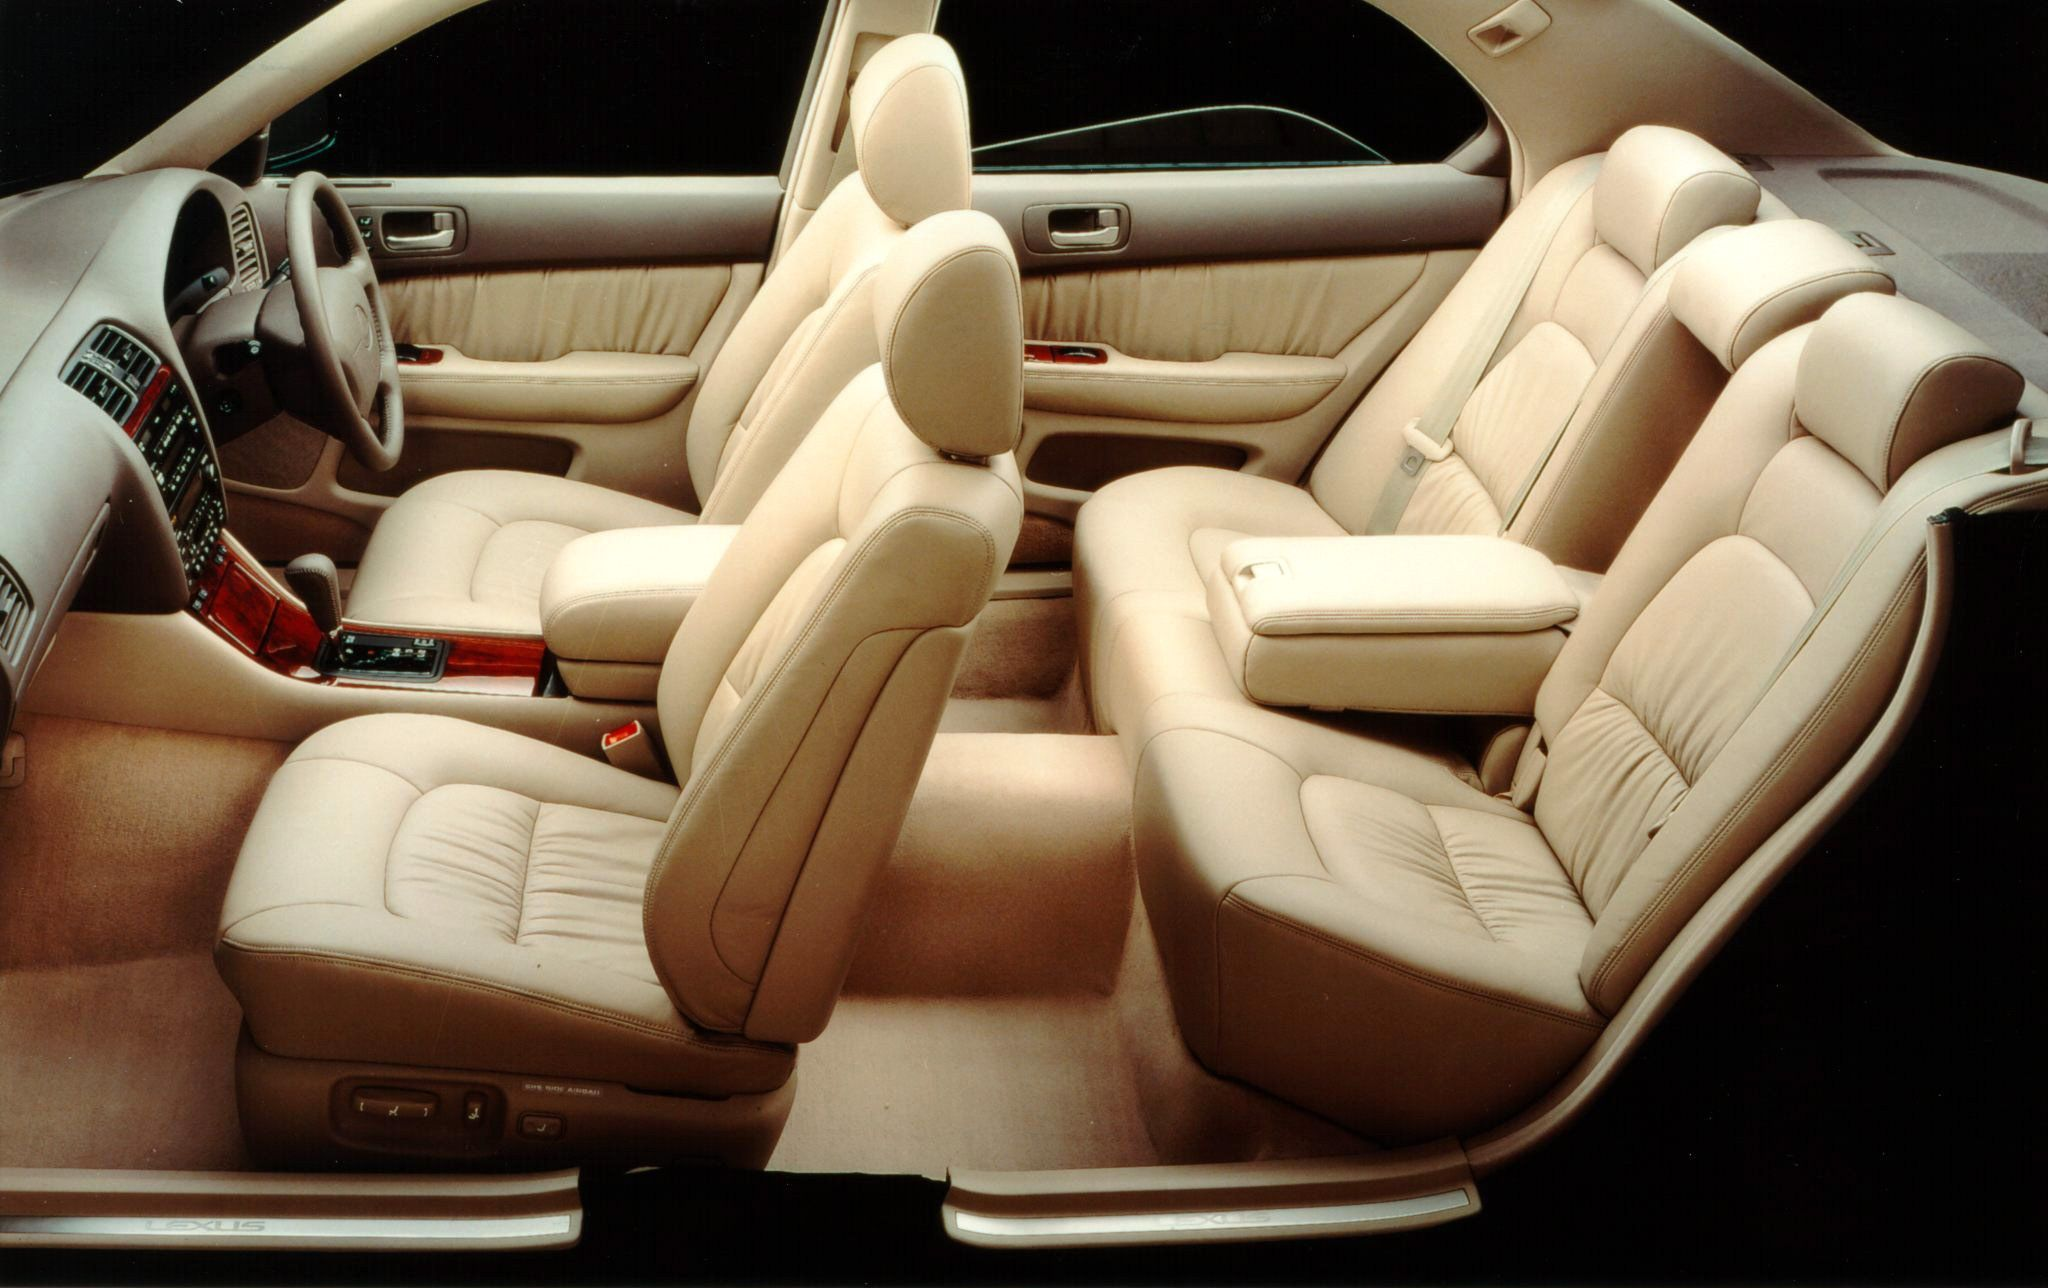 2000 Lexus Ls400 Specs New Cars Used Cars Car Reviews and Pricing